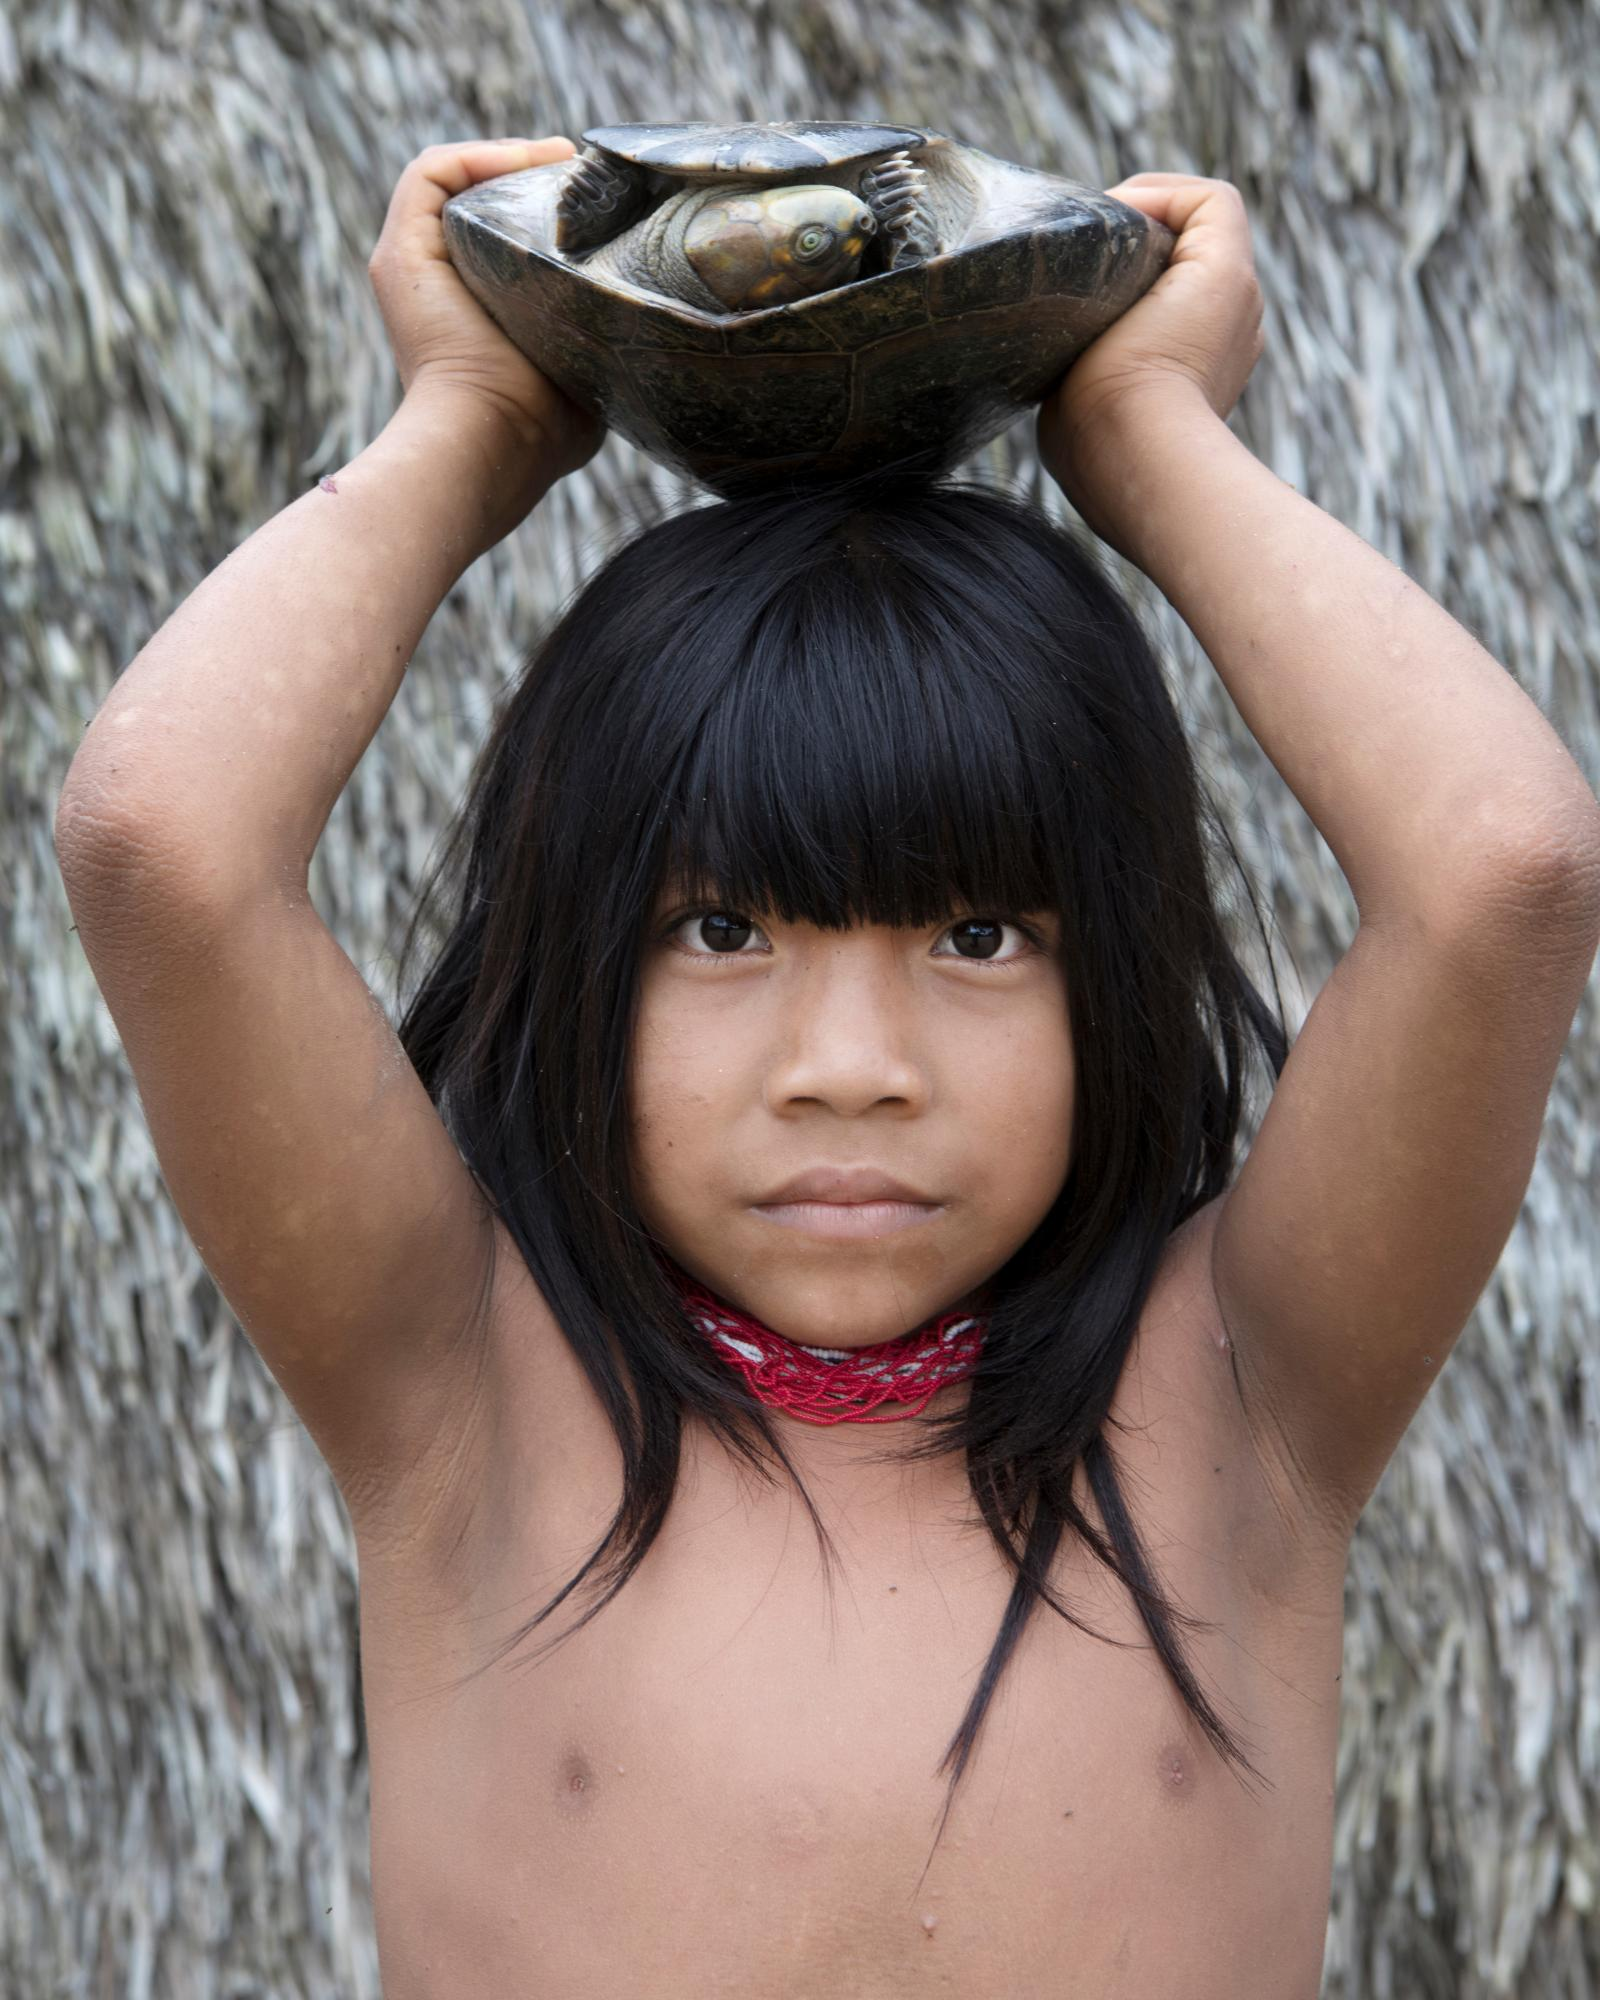 Valuable lost tribe of the amazon nude interesting